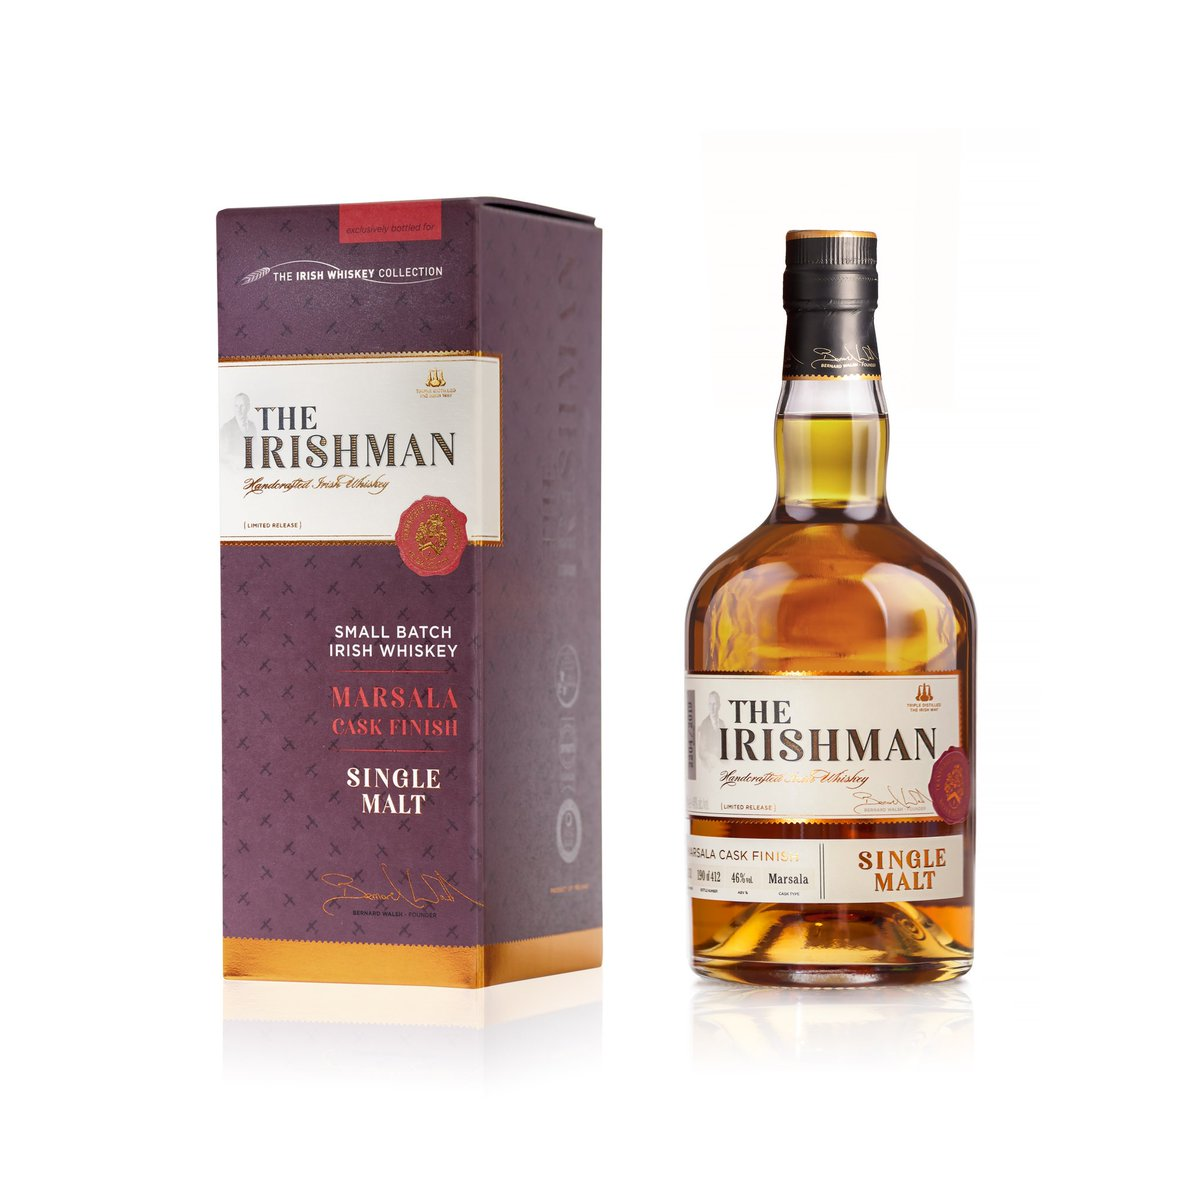 *Competition* Exclusive to The Irish Whiskey Collection, The Irishman Single Malt Marsala Cask @WalshWhiskey launches today at The Loop Dublin Airport.  We've a bottle to give away to 1 lucky follower. Just follow & RT to enter.  *Drink responsibly. T's&C's apply, Must be over 18